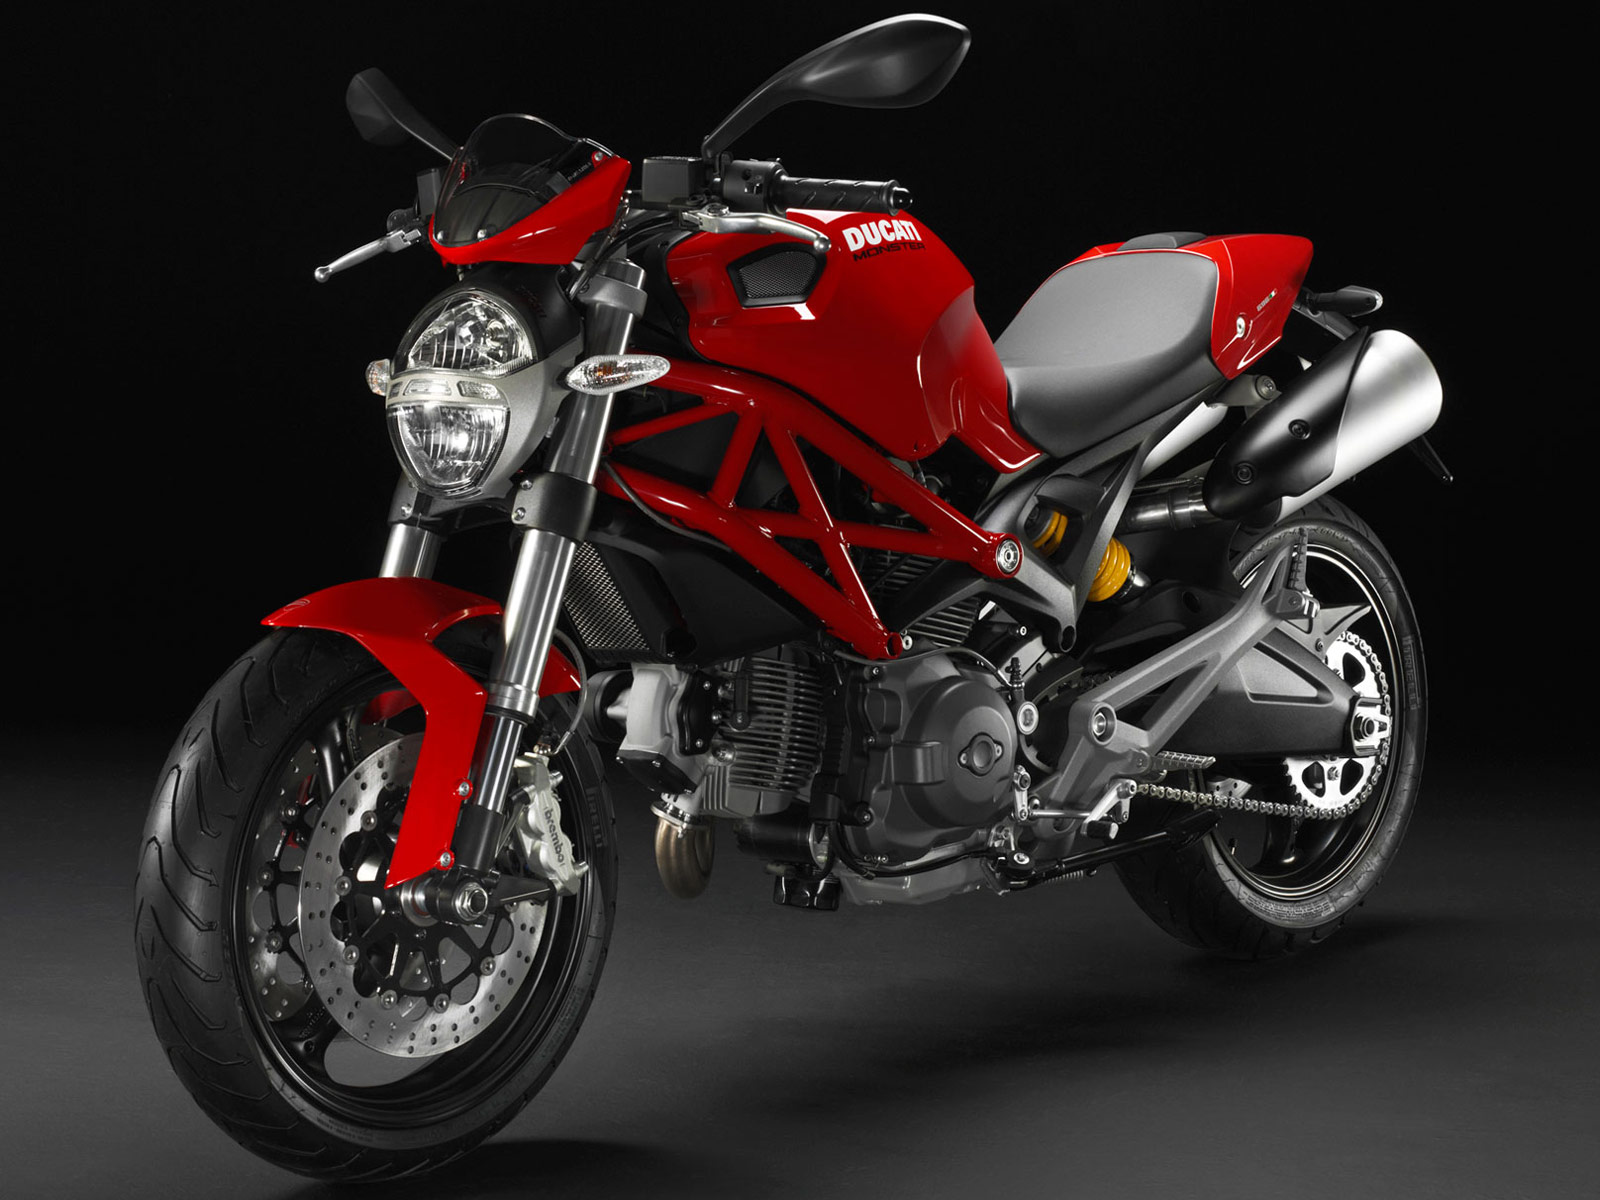 insurance information | 2012 Ducati Monster 696 pictures